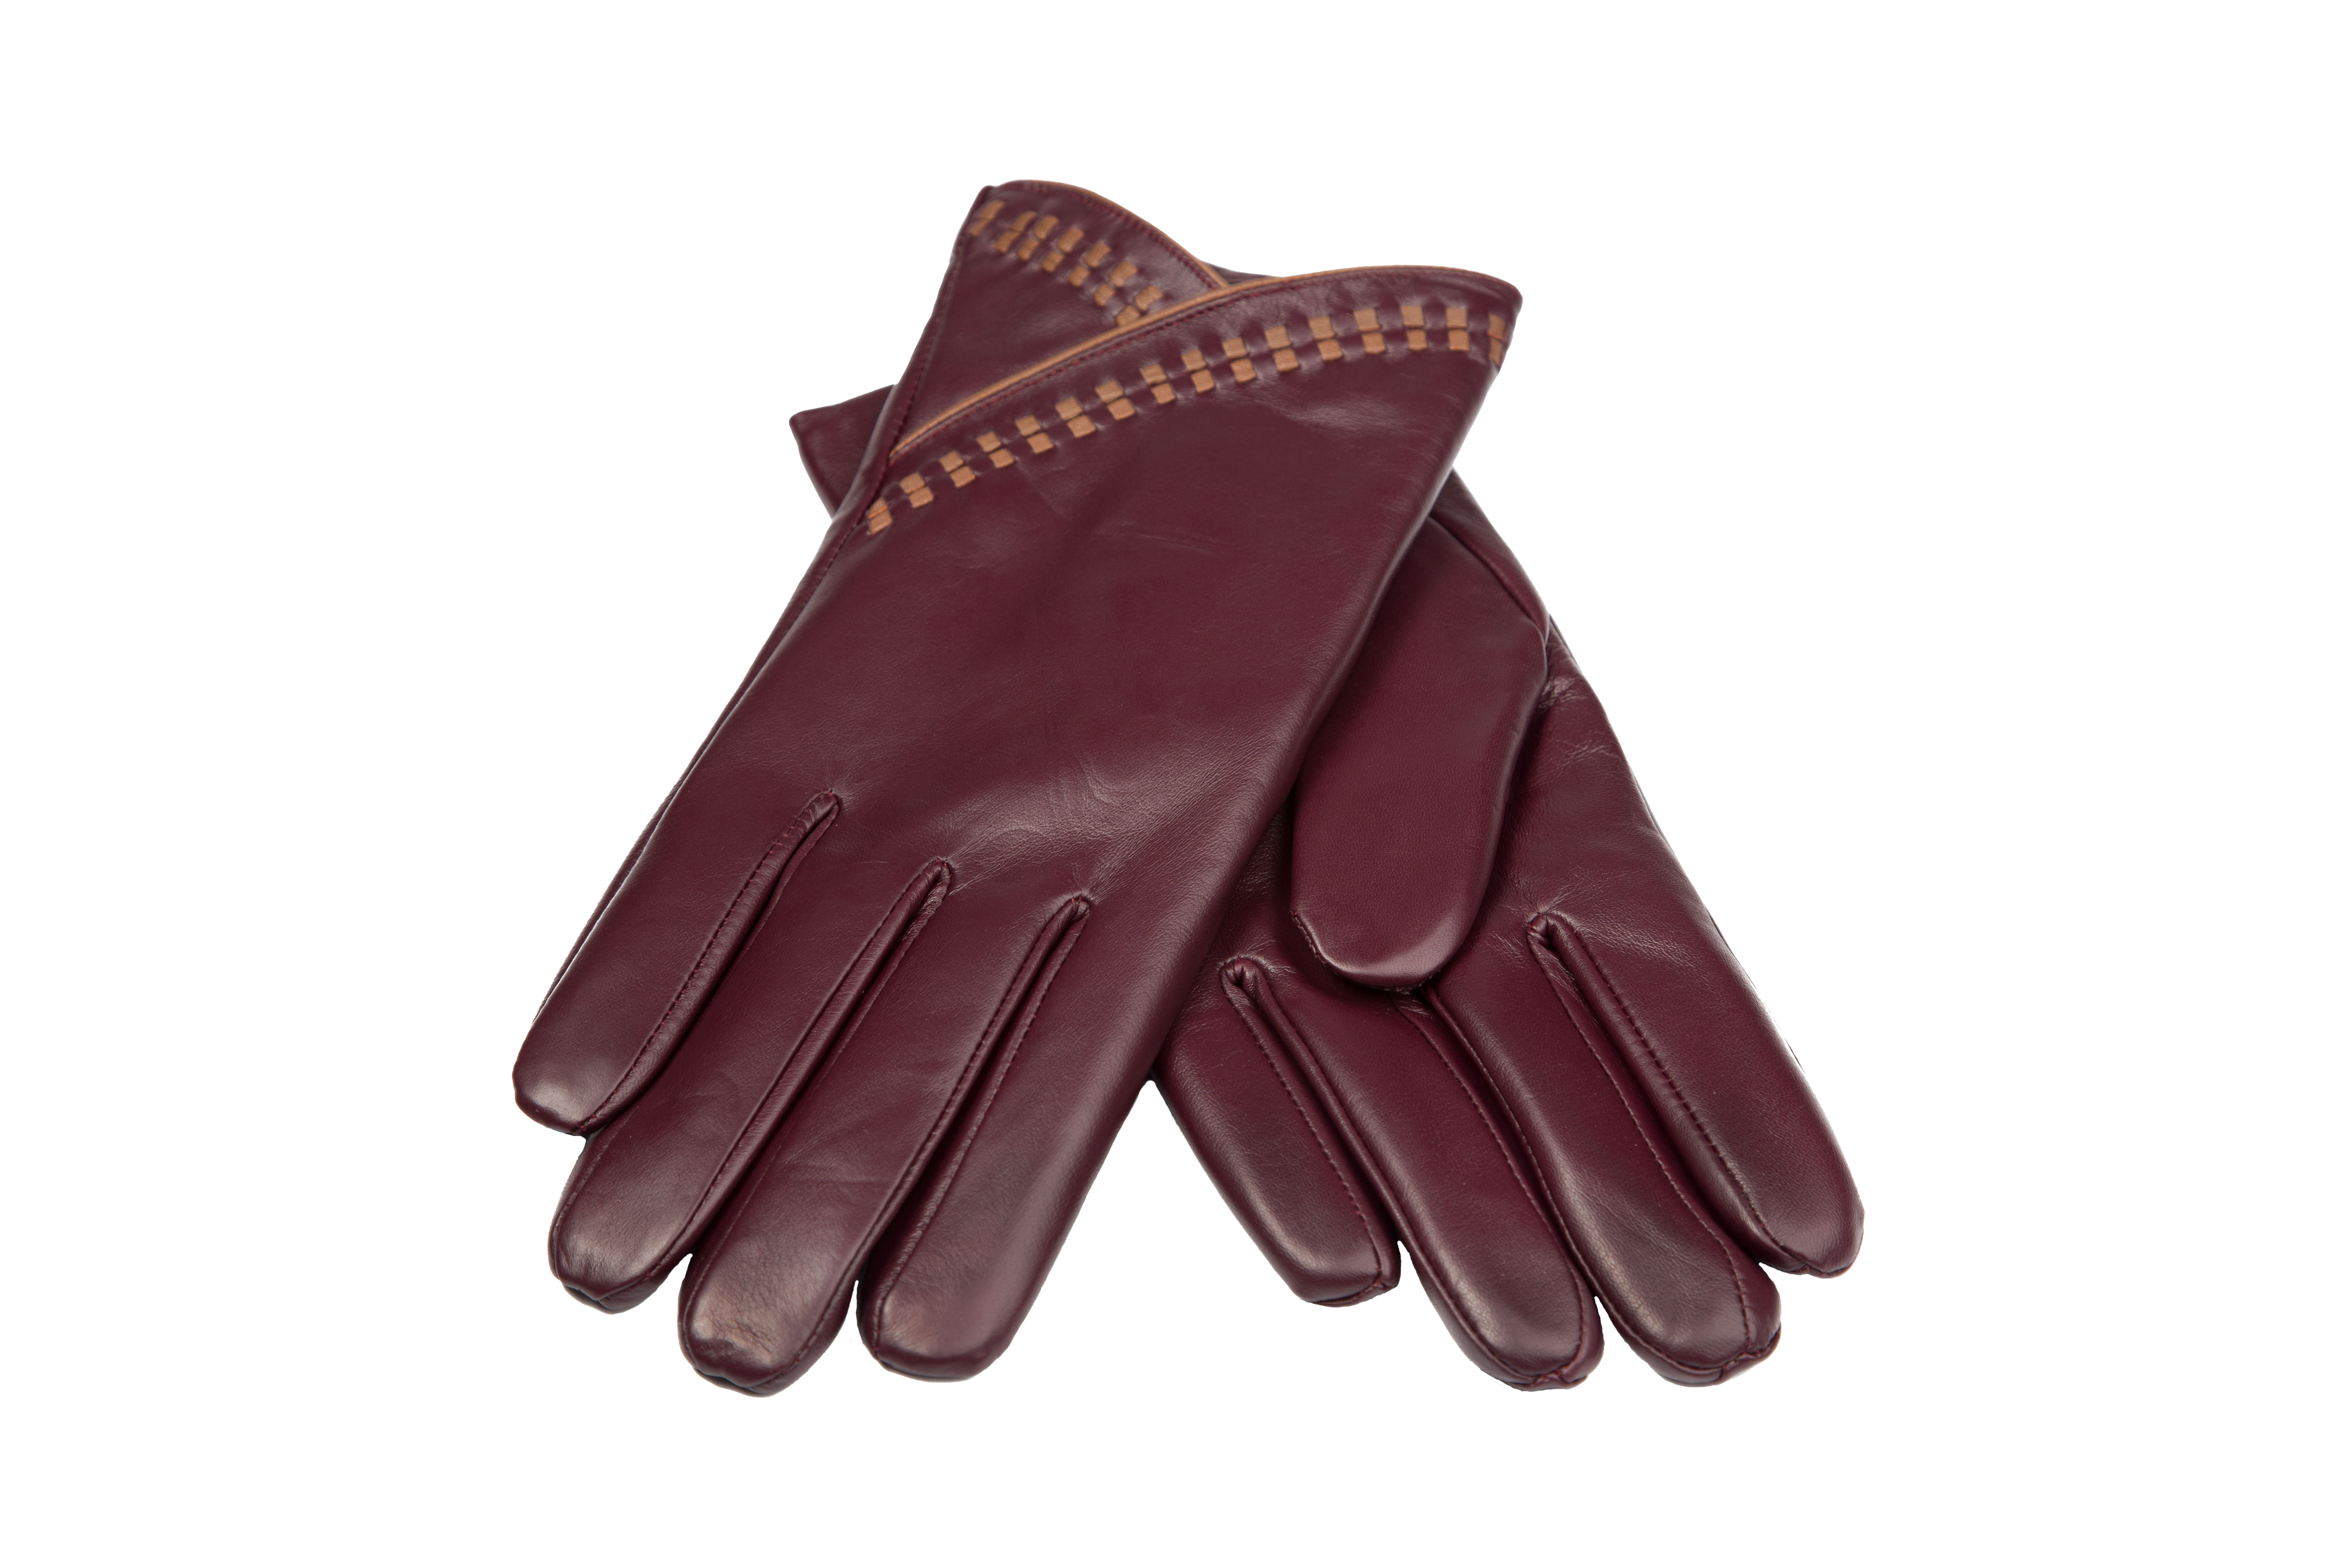 The Clarets – Women's Leather Dress Gloves with Long ...